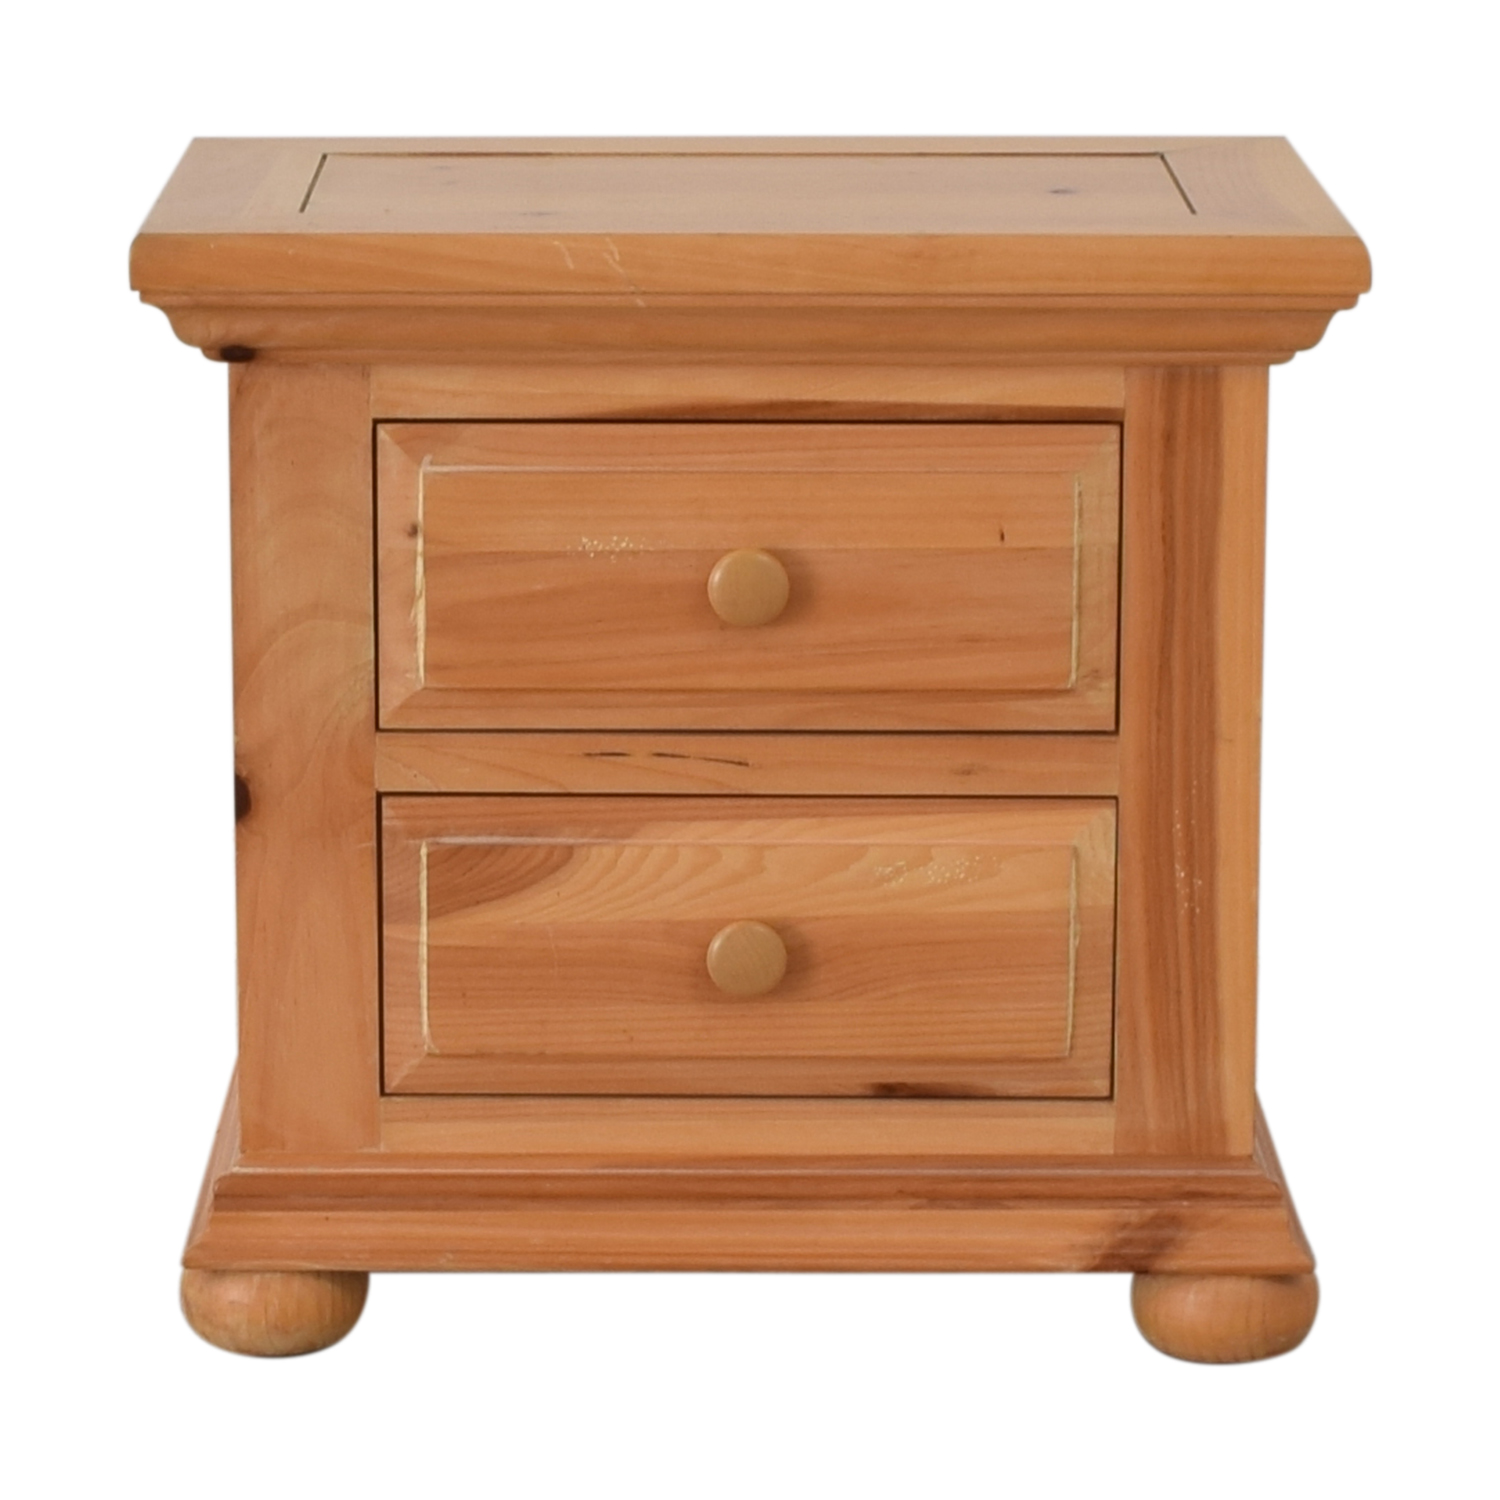 Broyhill Furniture Broyhill Furniture Natural Two-Drawer End Table Tables